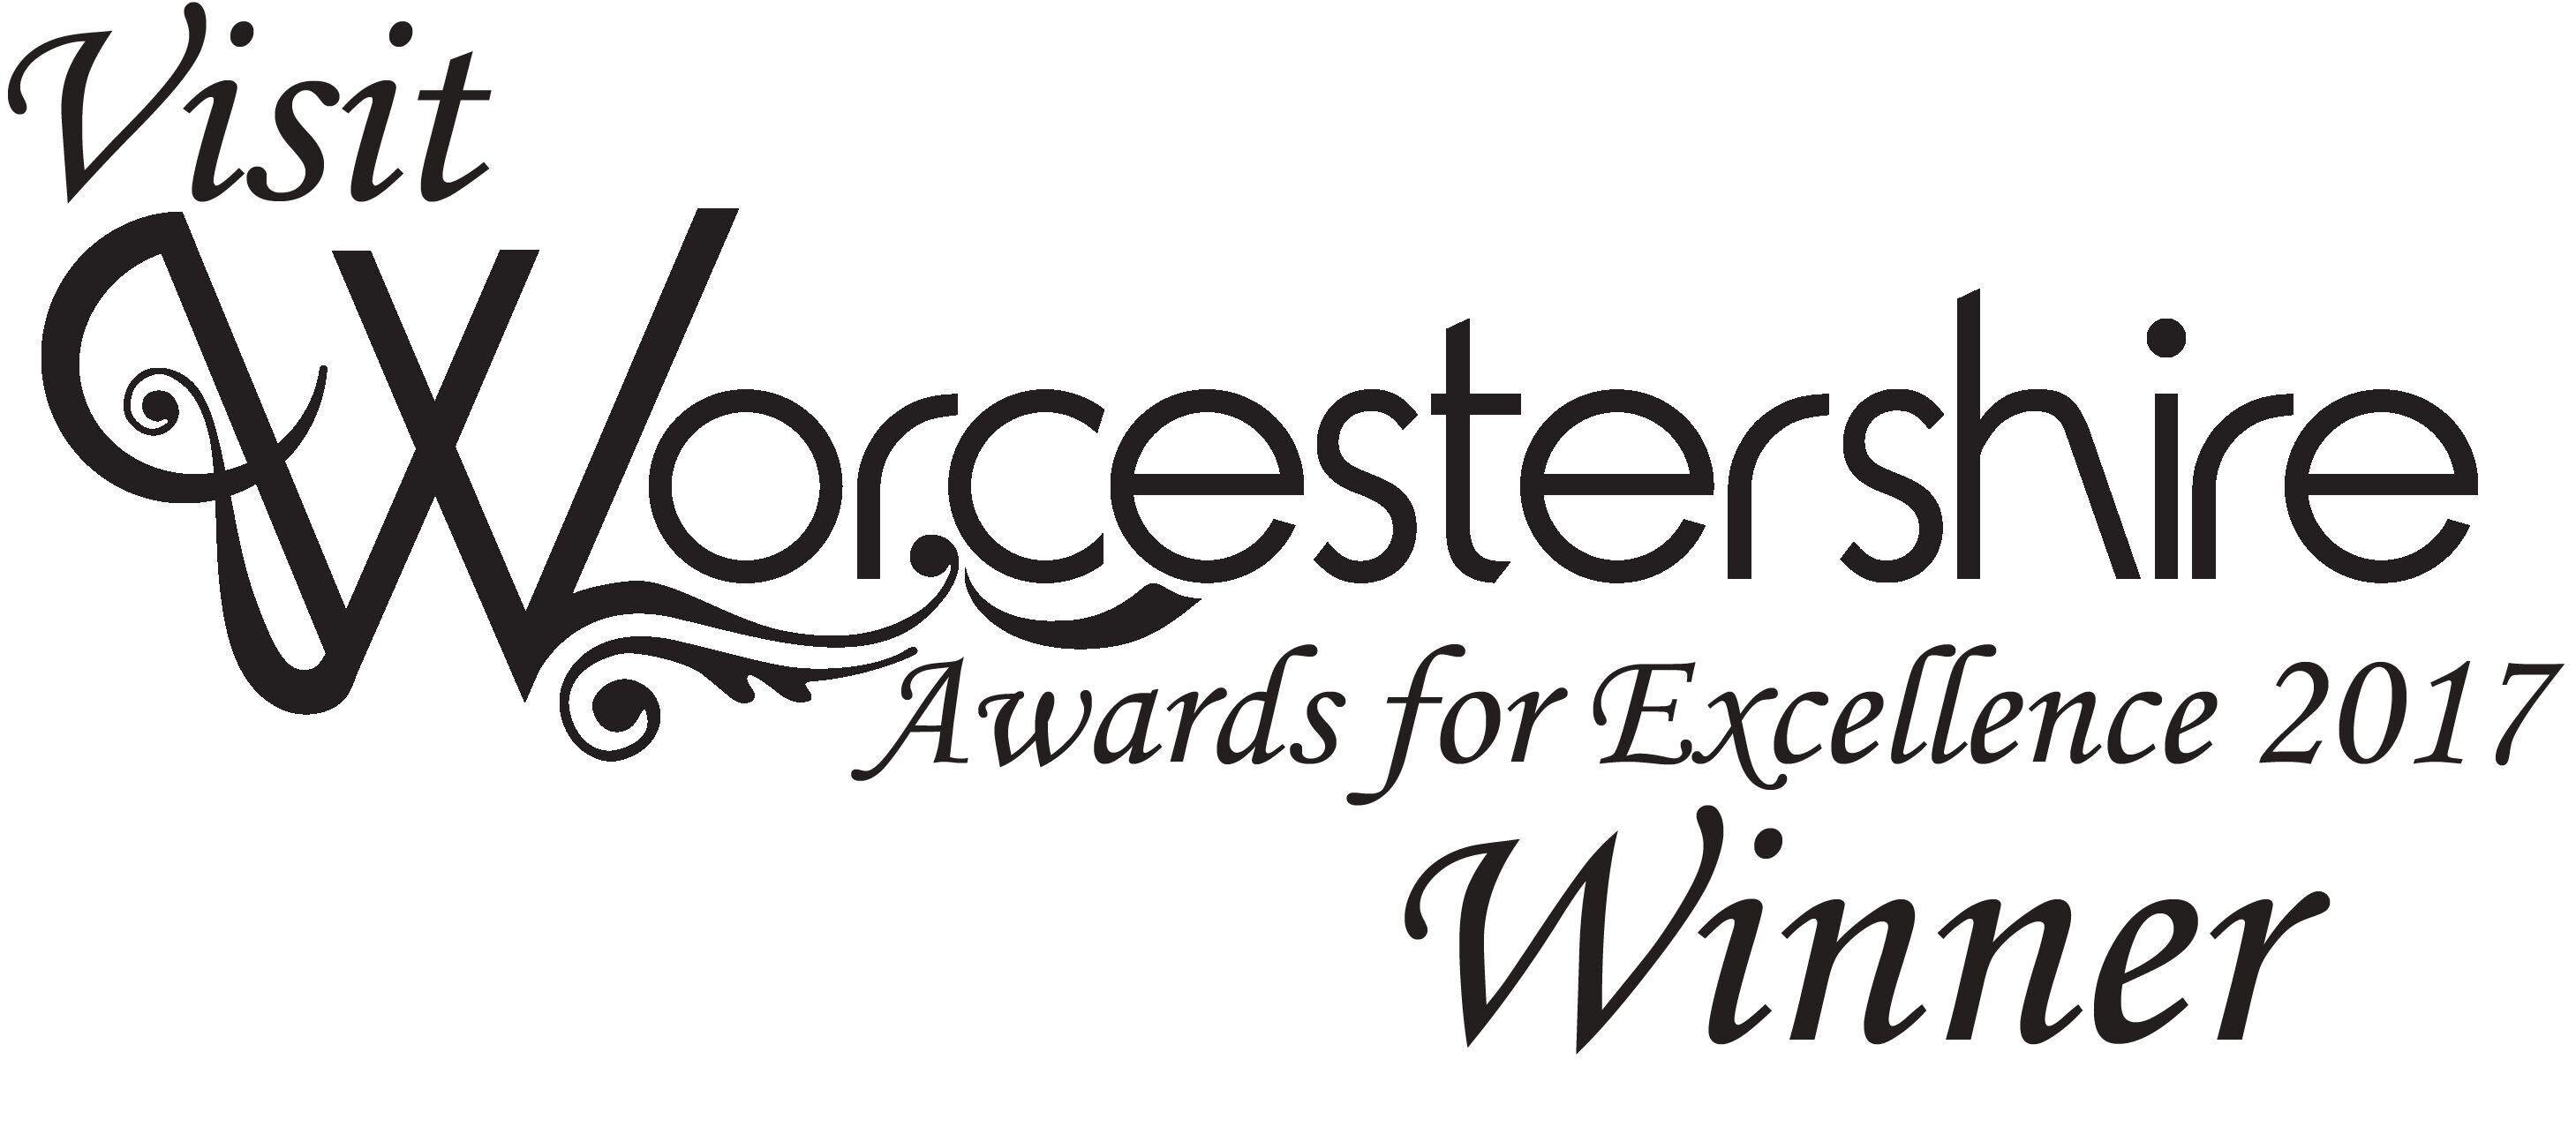 Visit-Worcestershire-Awards-Logo-Winner